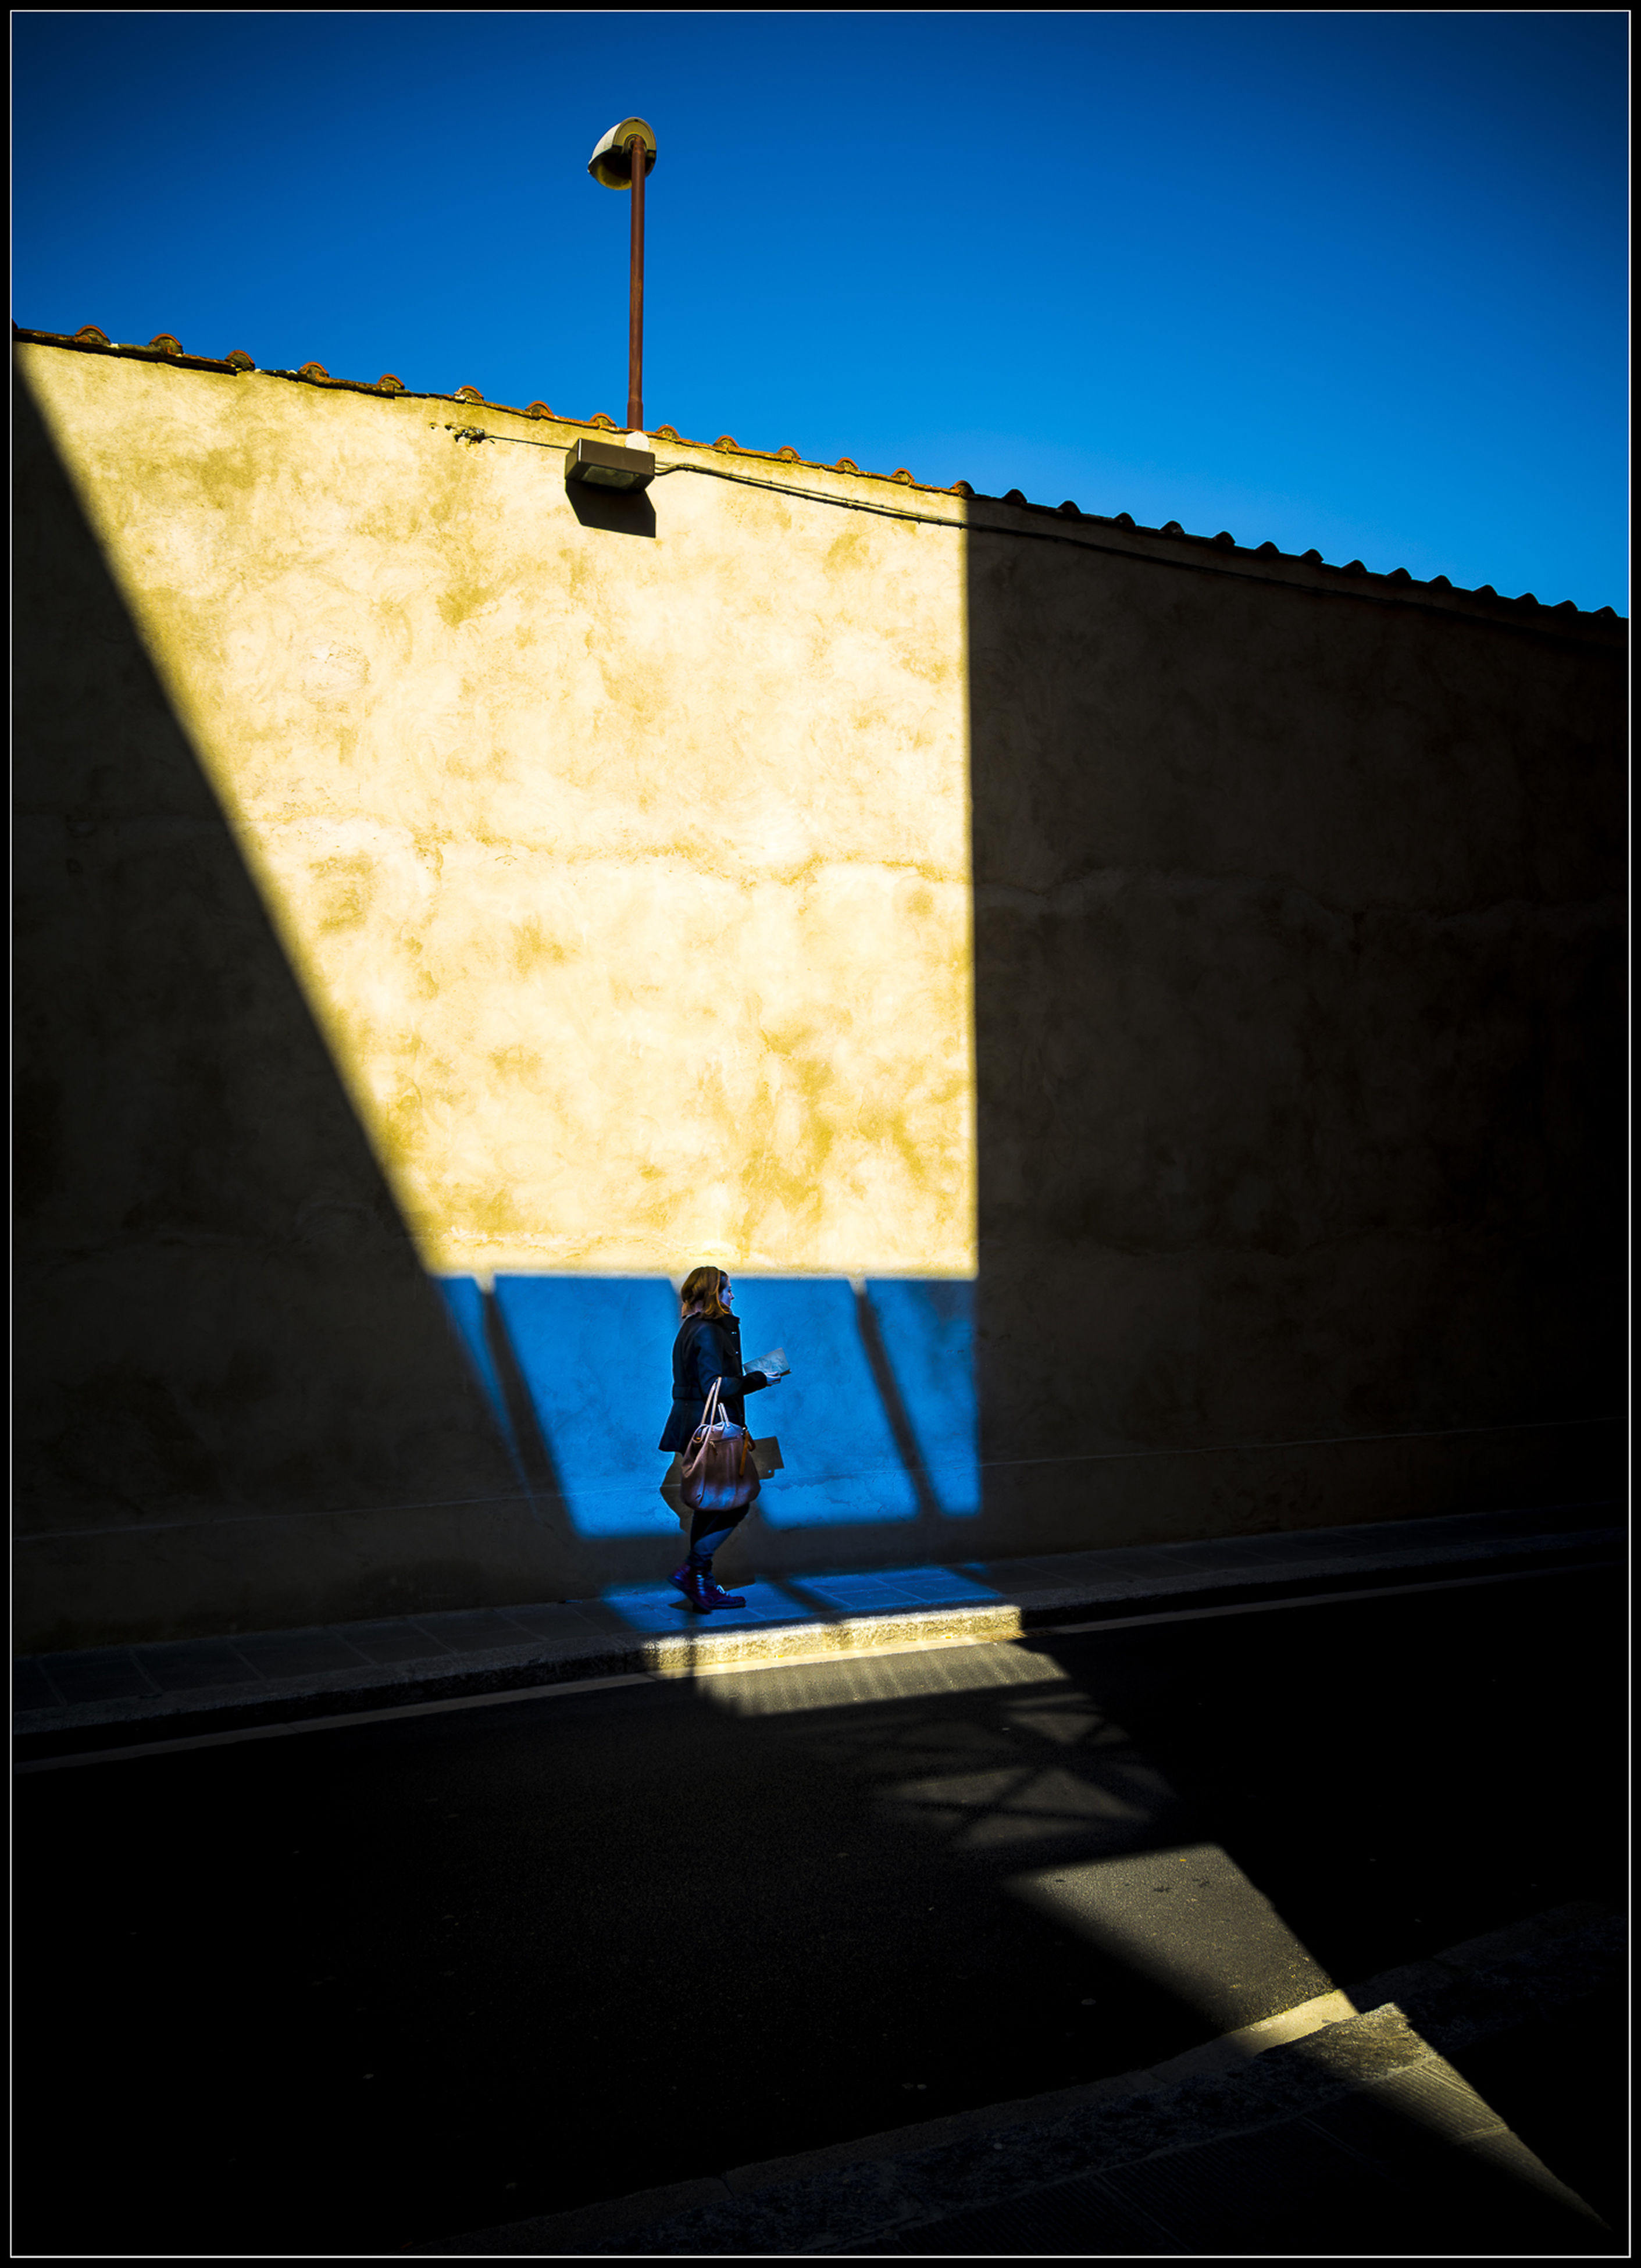 shadow, sunlight, architecture, blue, built structure, outdoors, day, real people, building exterior, one person, clear sky, sky, people